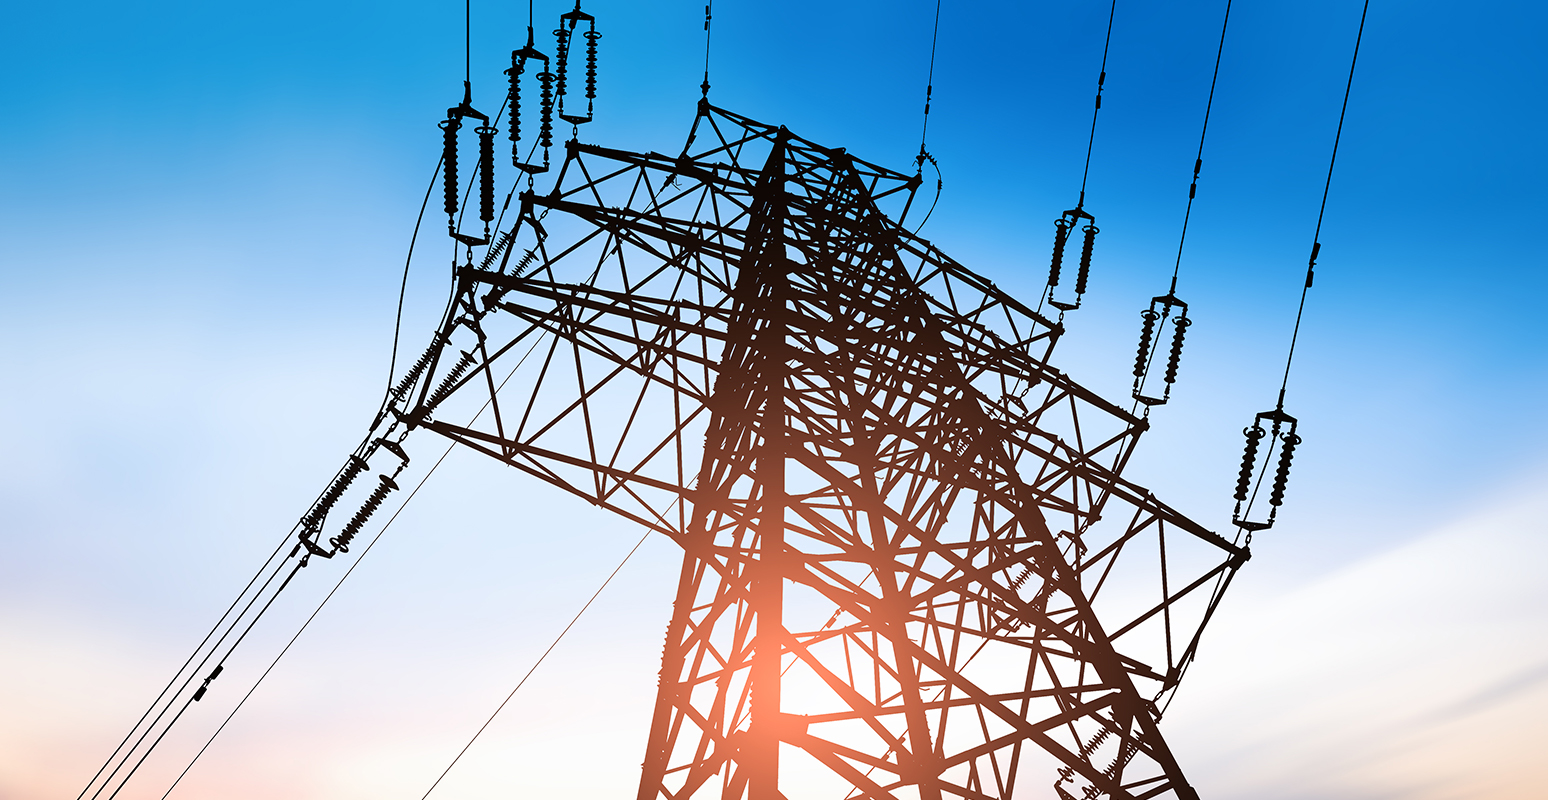 National Grid Electricity Contractors - Energy & Utility Skills Register